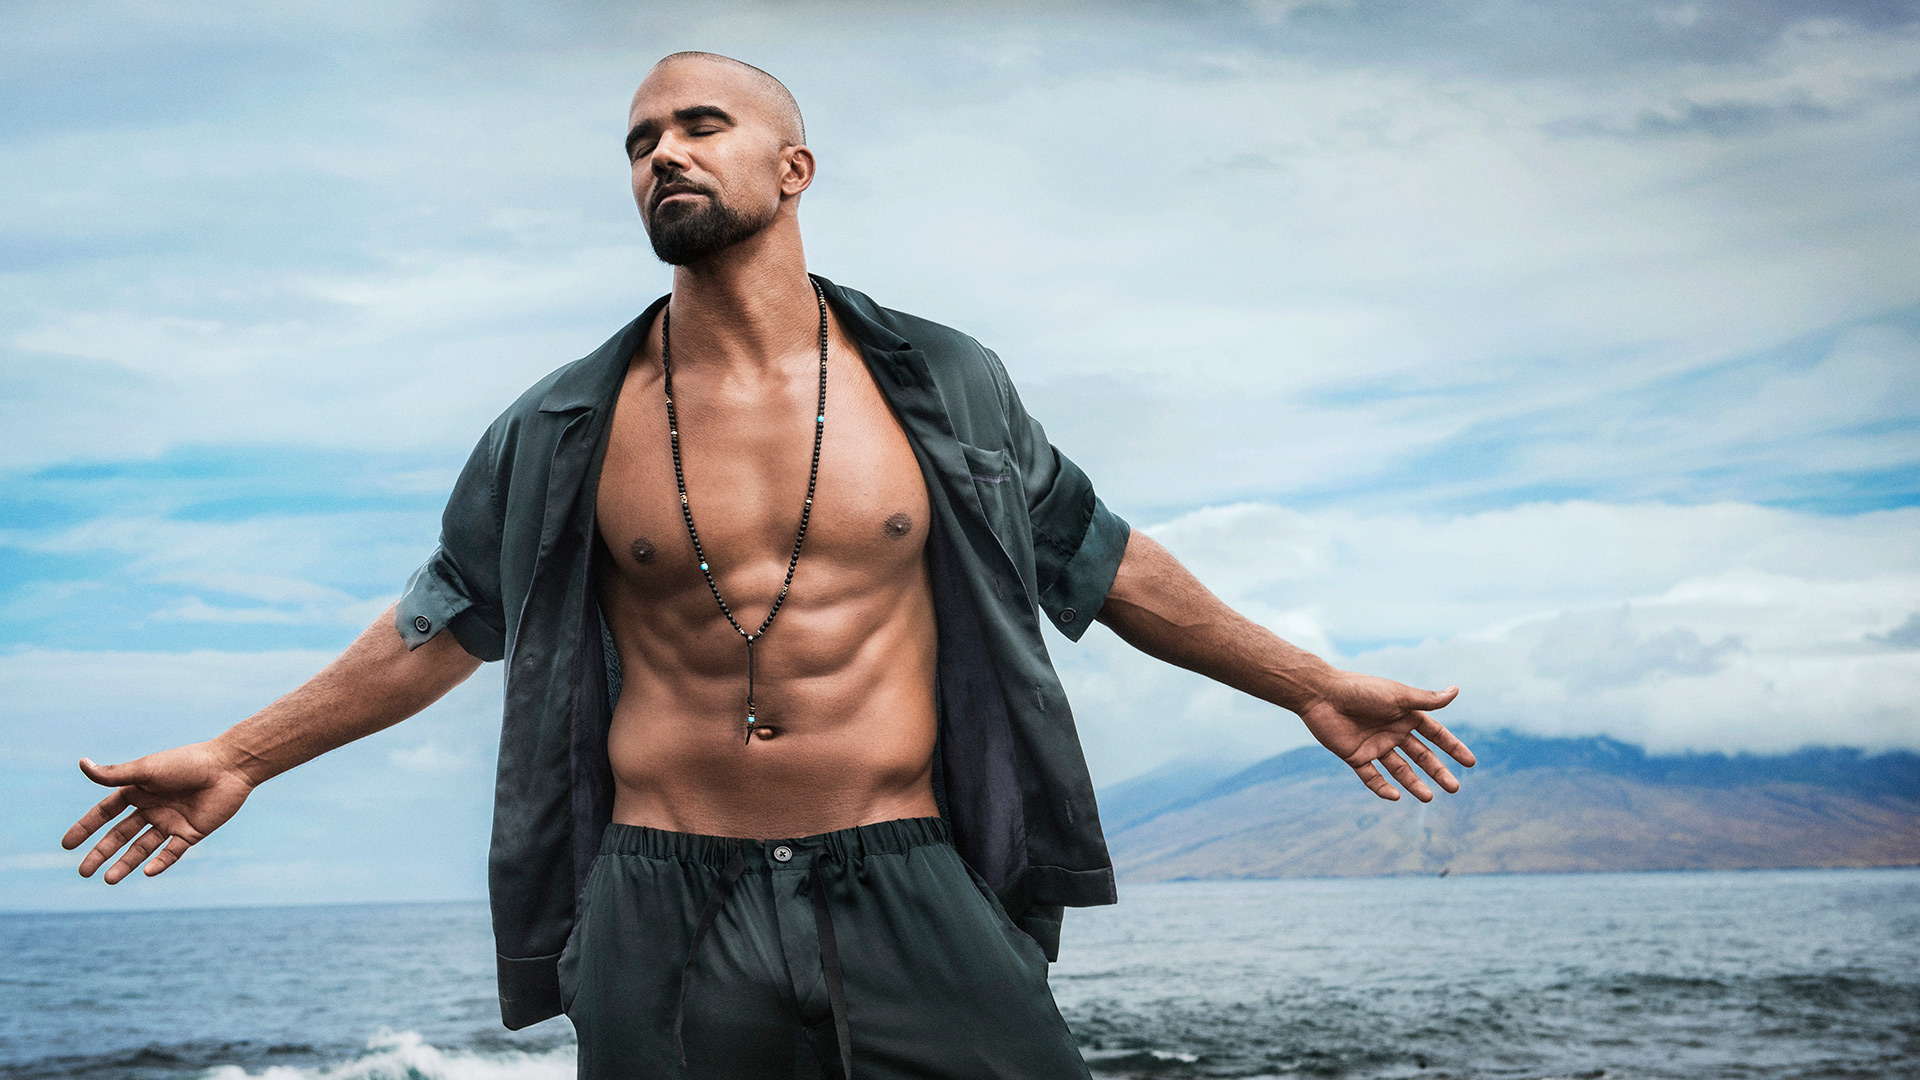 Shemar Moore, especially when he shows off his washboard abs